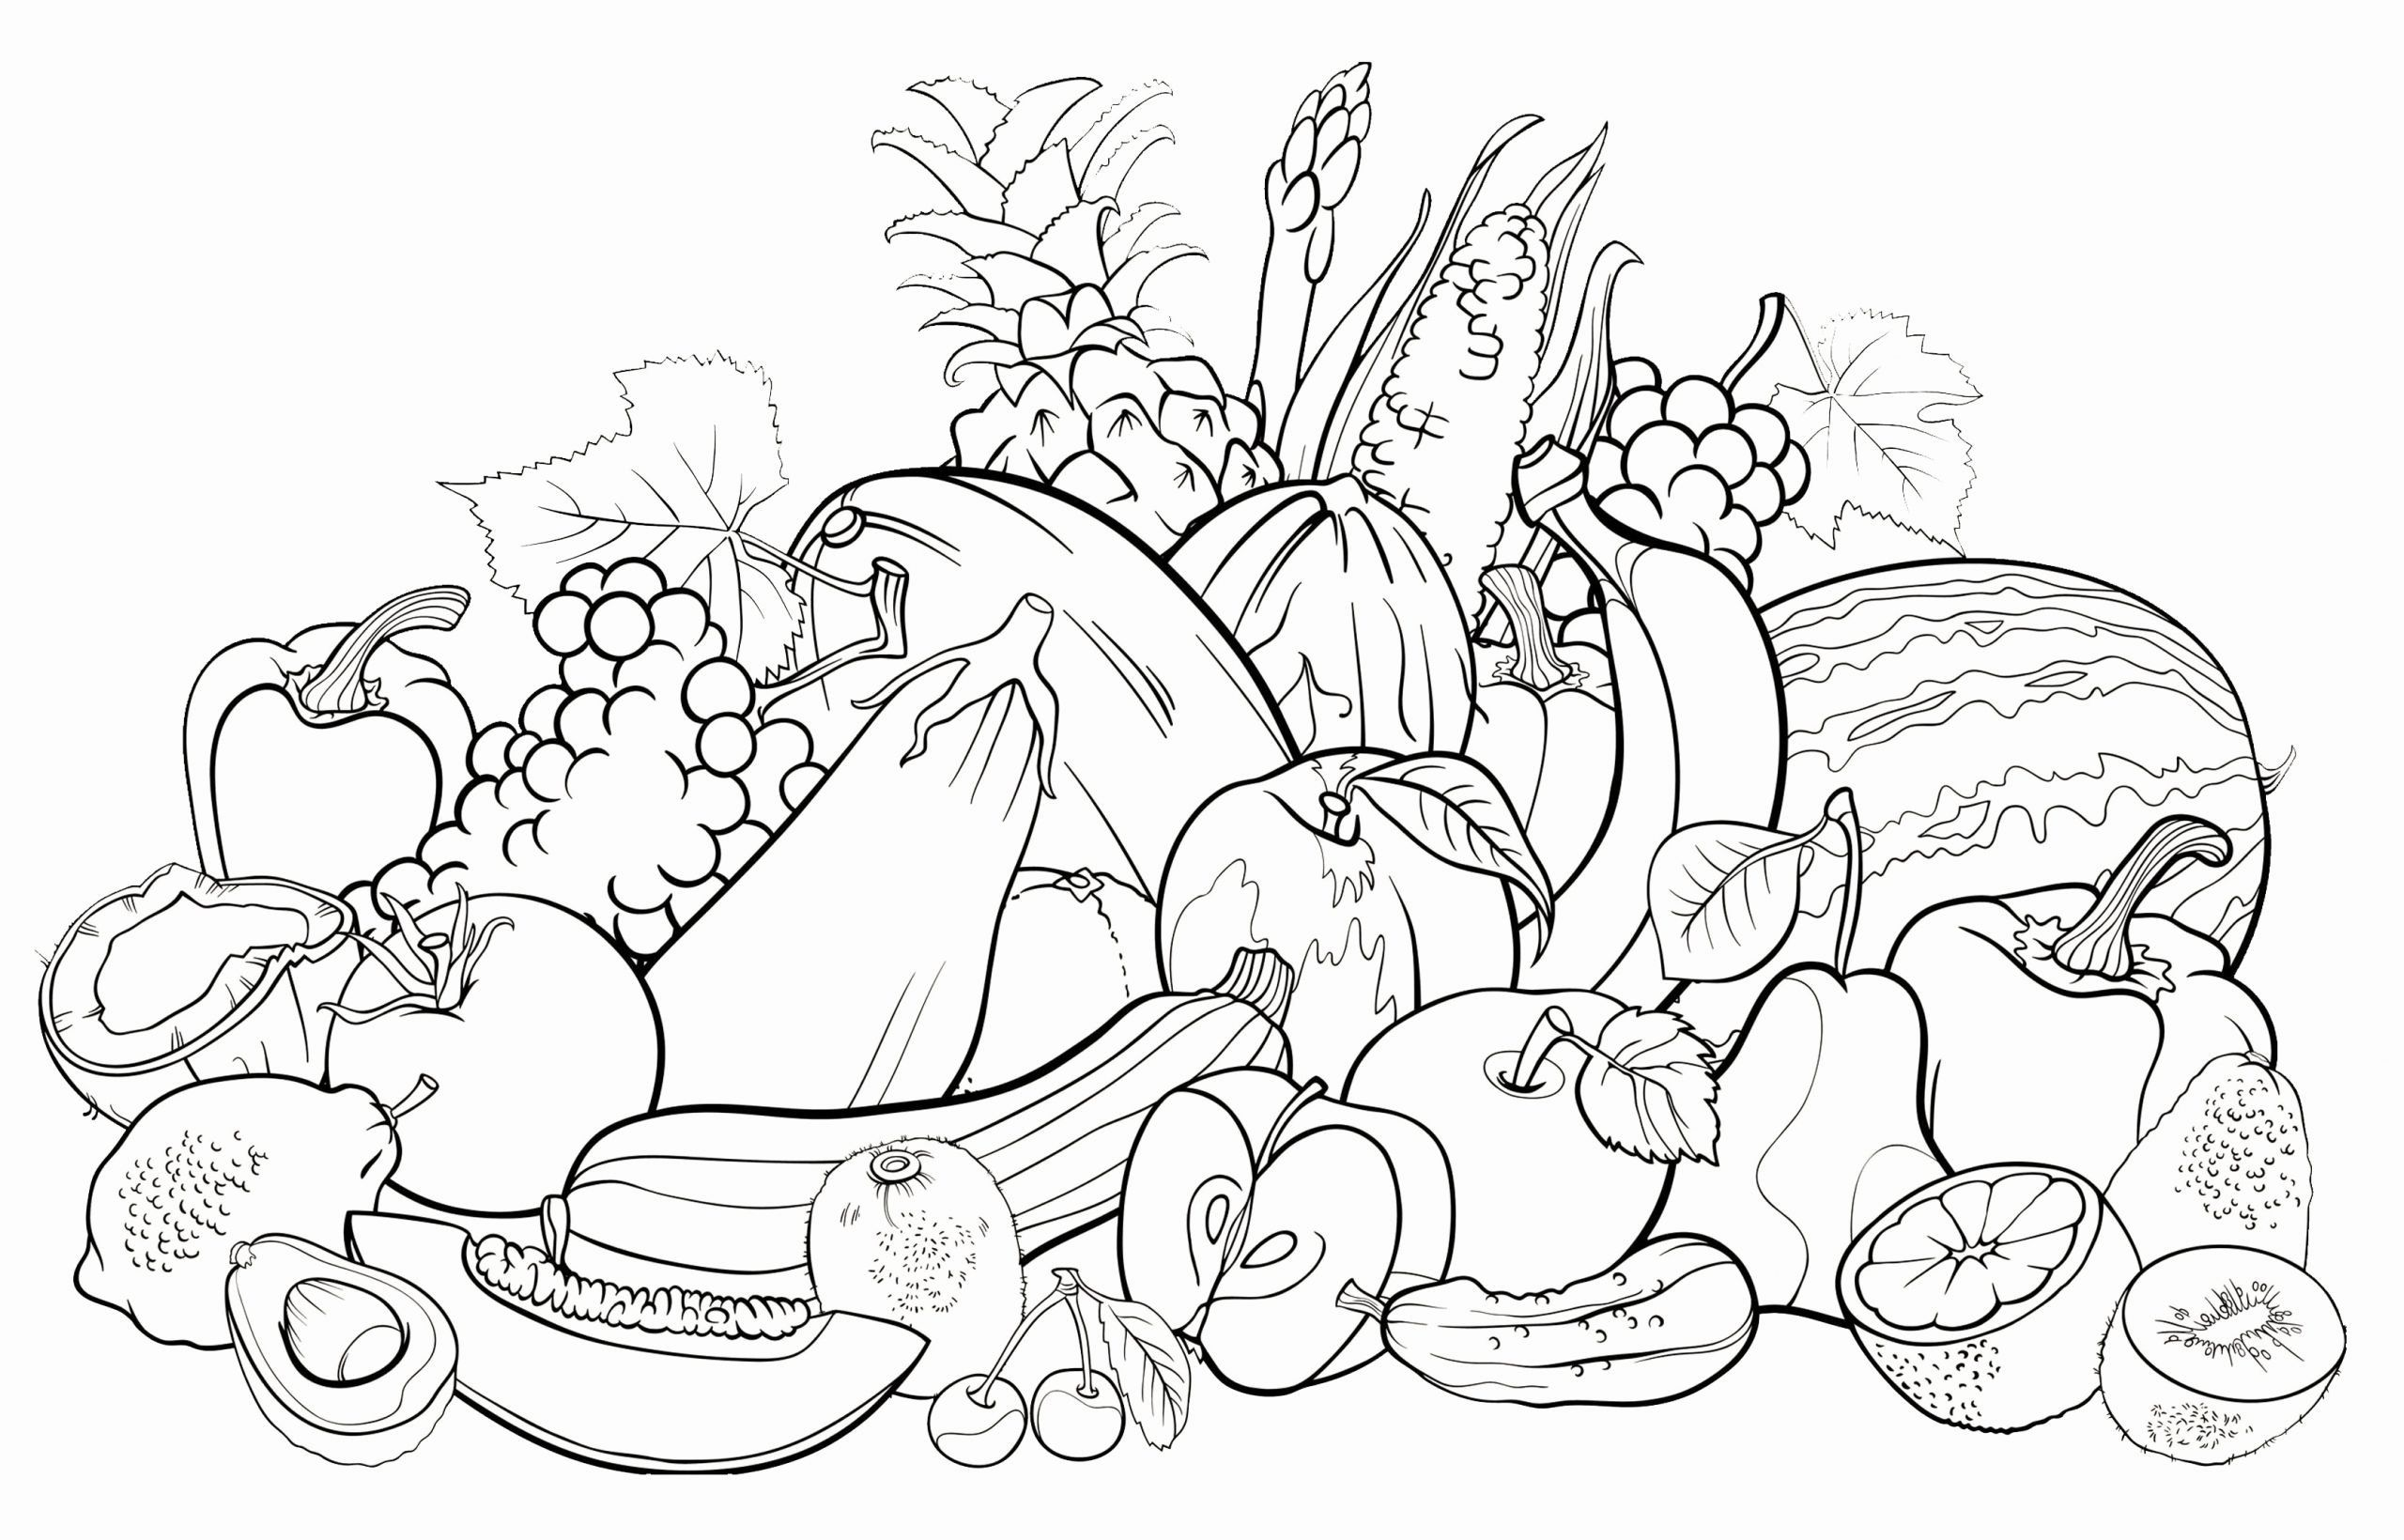 Coloring Pages Fruits And Vegetables Elegant All Fruits Coloring Pages In 2020 Fruit Coloring Pages Vegetable Coloring Pages Coloring Pages